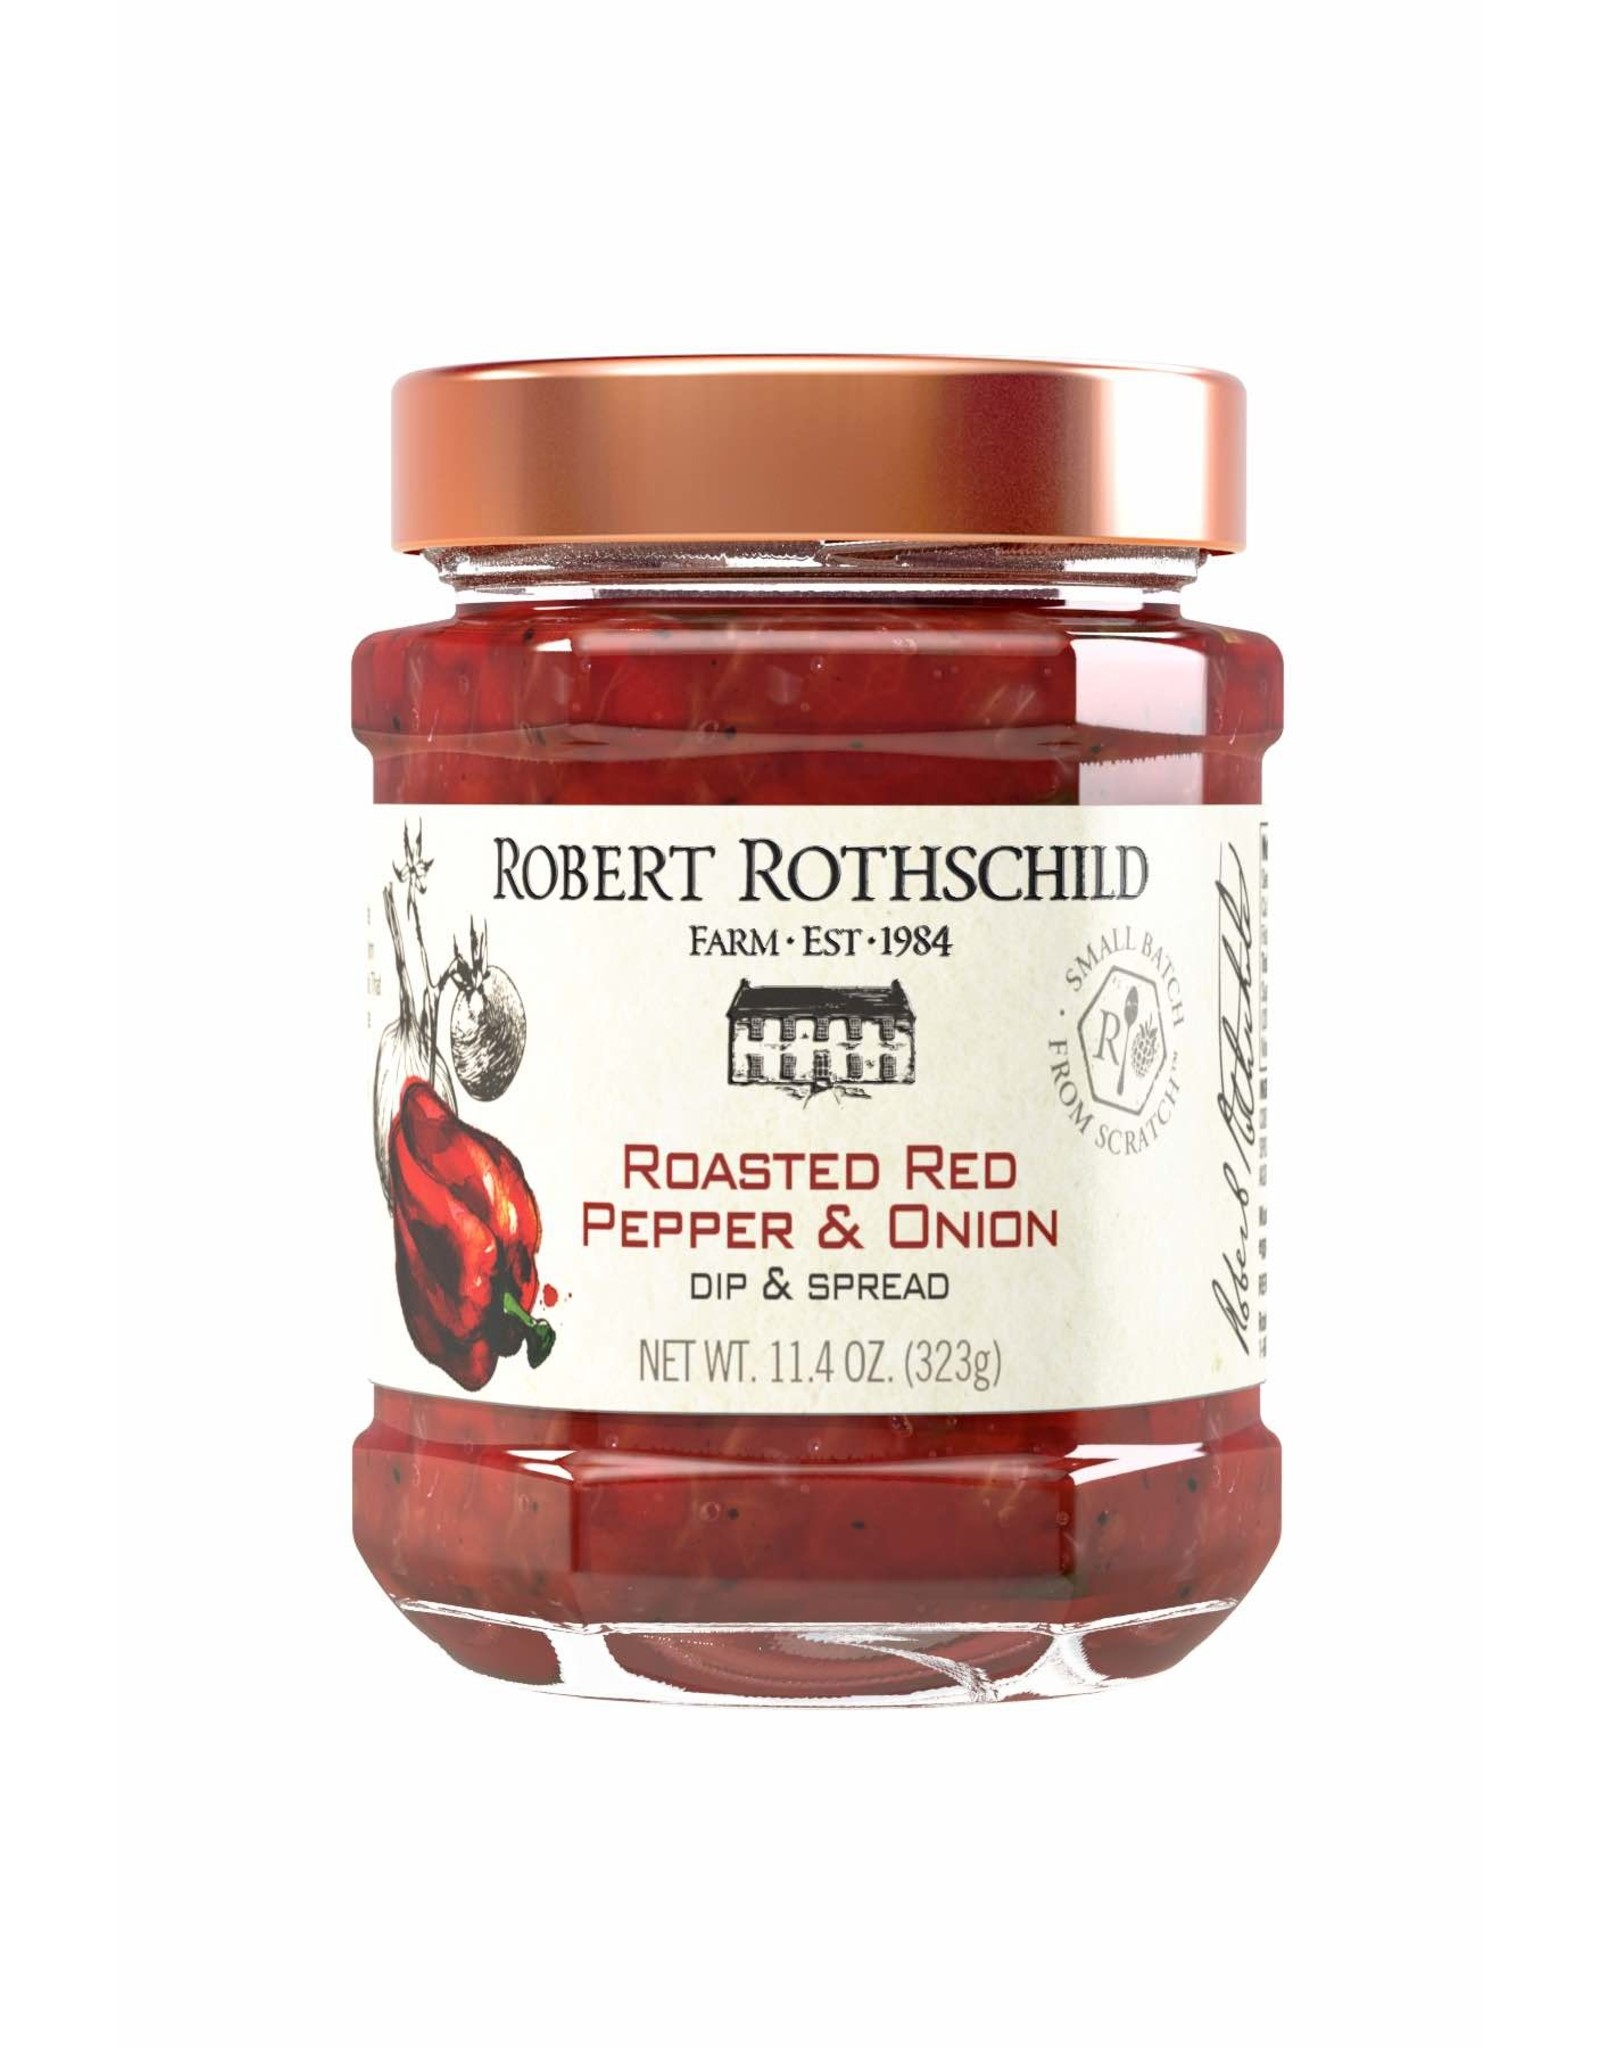 Robert Rothchild Roasted Red Pepper & Onion Dip, 11.4oz